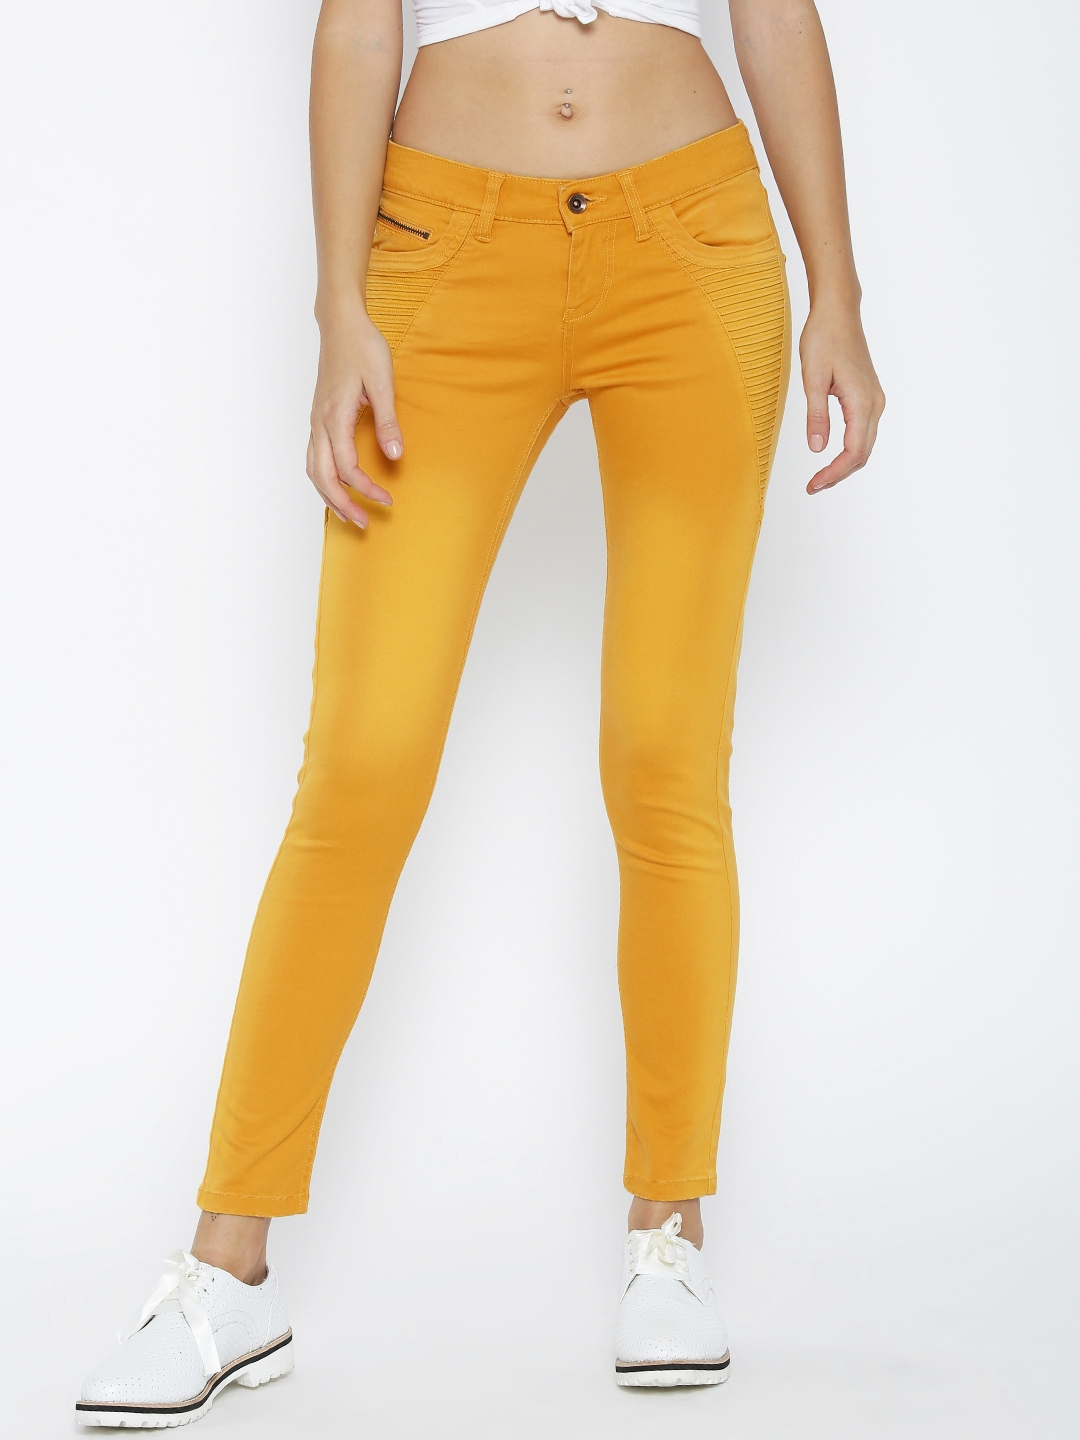 6ecf1dac0ffa Buy Pepe Jeans Women Mustard Yellow Skinny Fit Solid Trousers ...